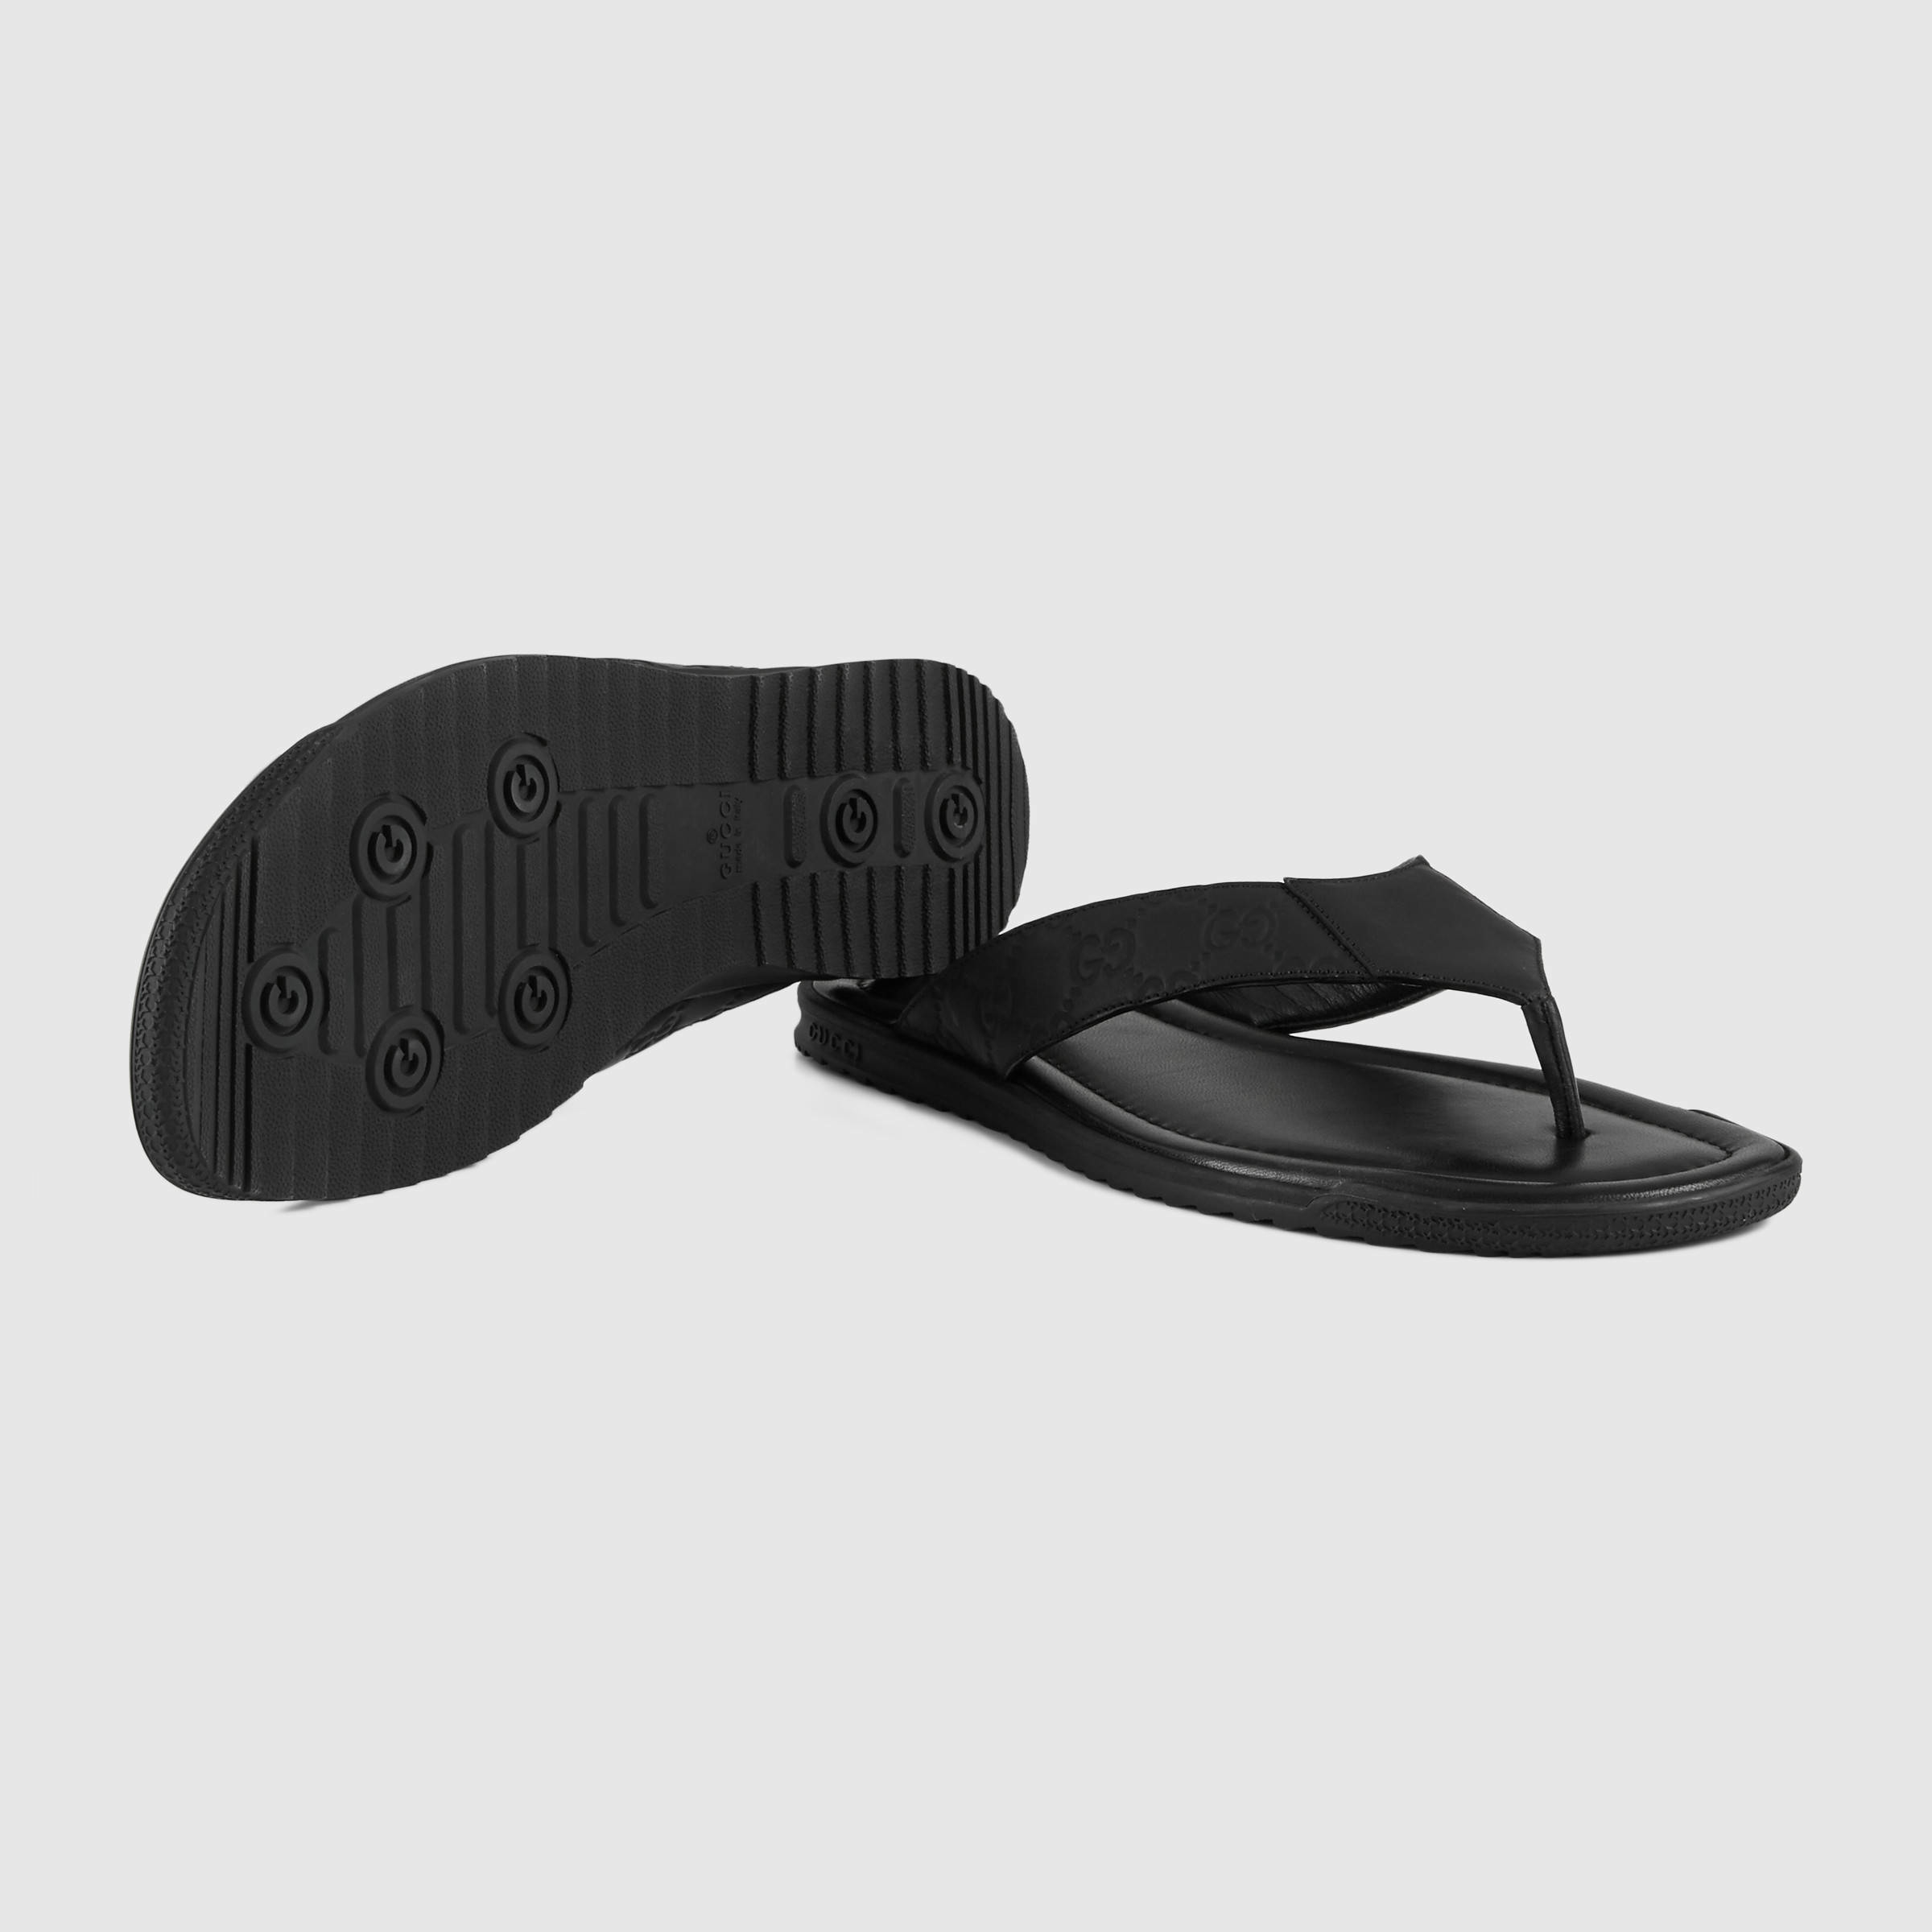 8747d7e07168 Gucci Rubberized Leather Thong Sandal in Black for Men - Lyst